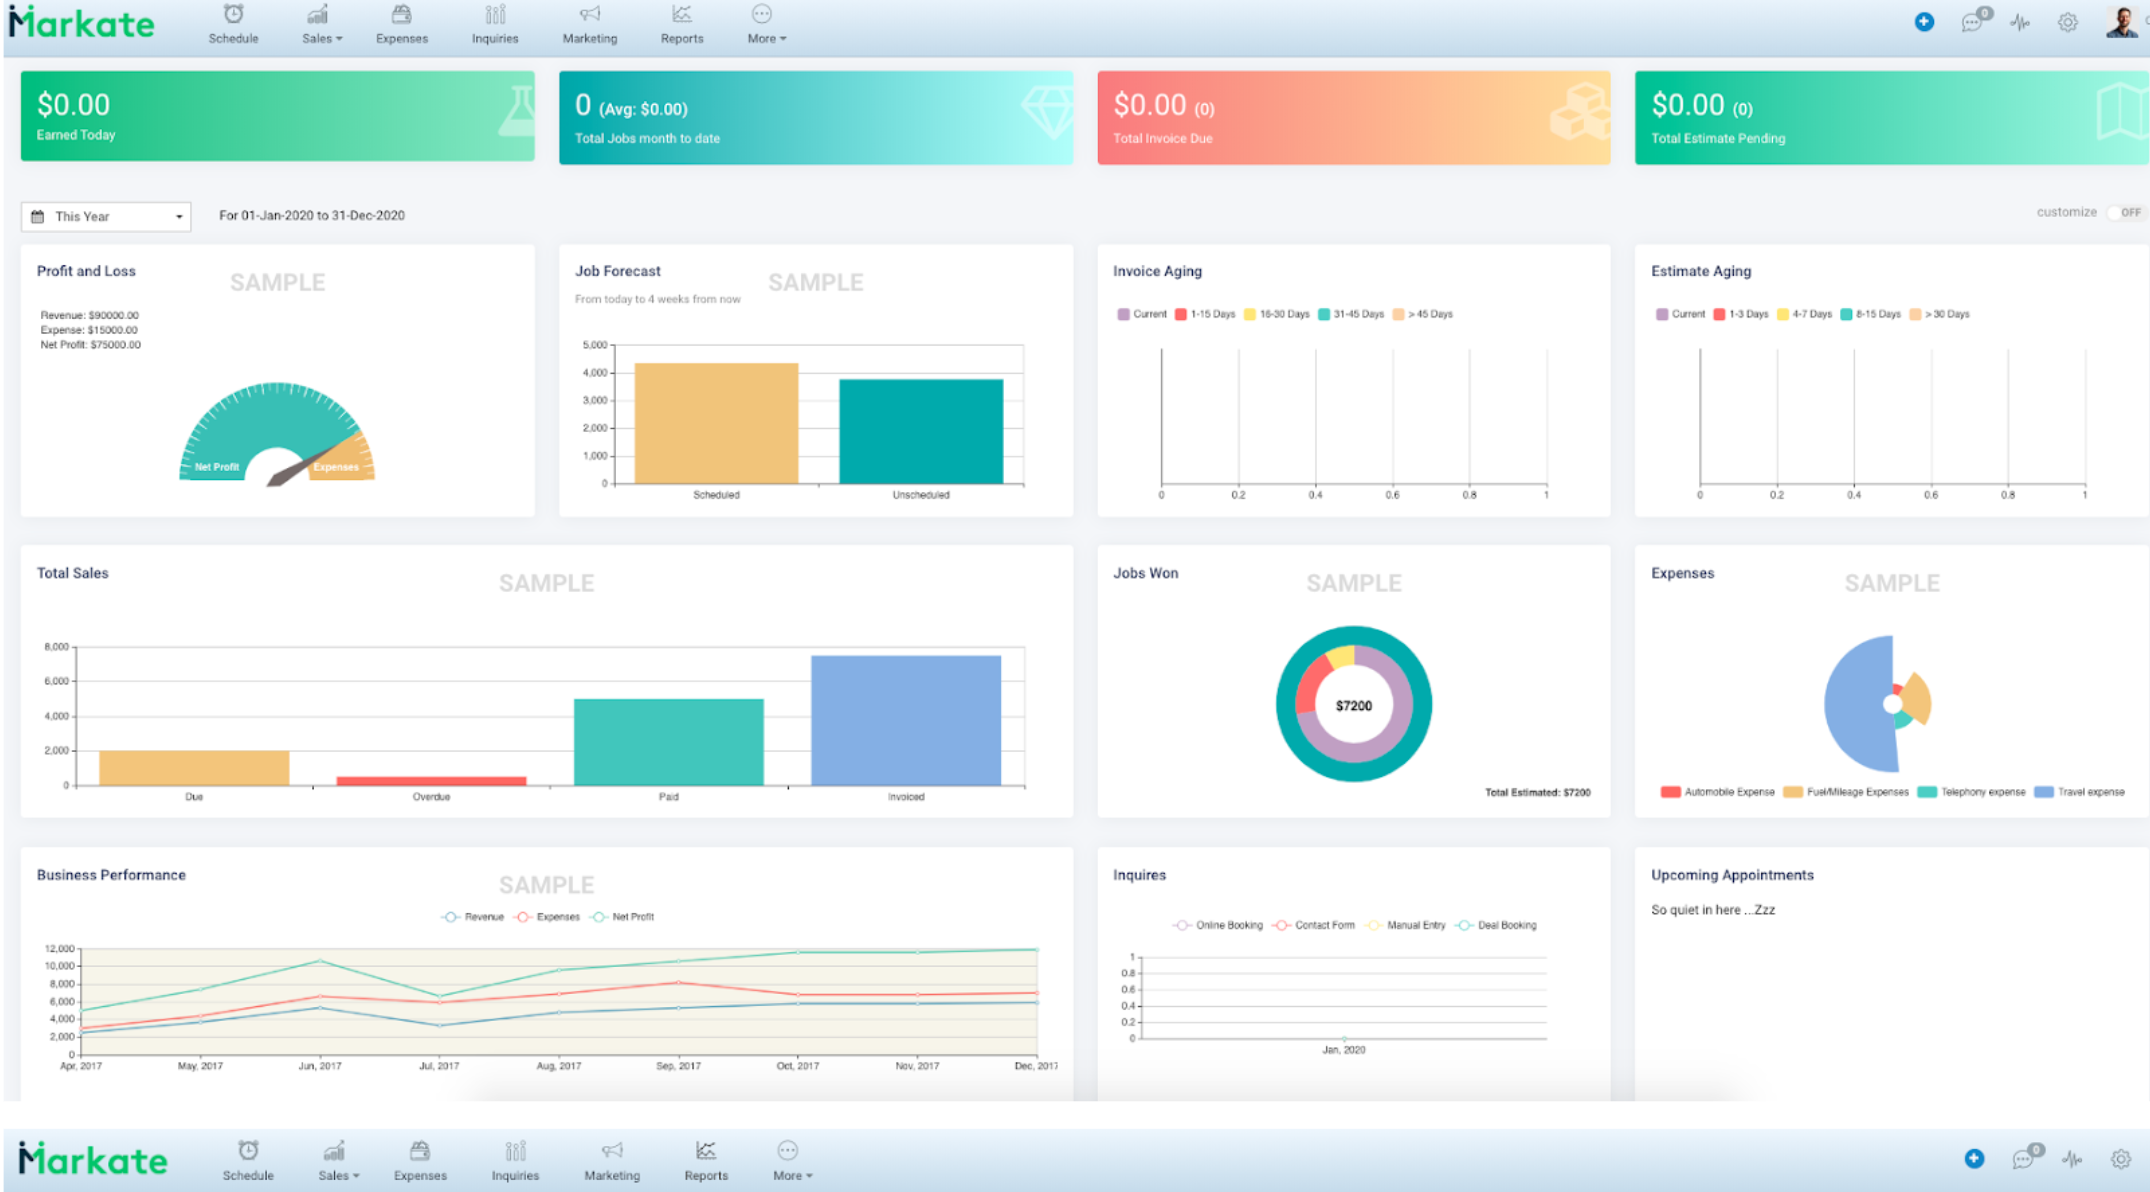 Example of the Markate dashboard